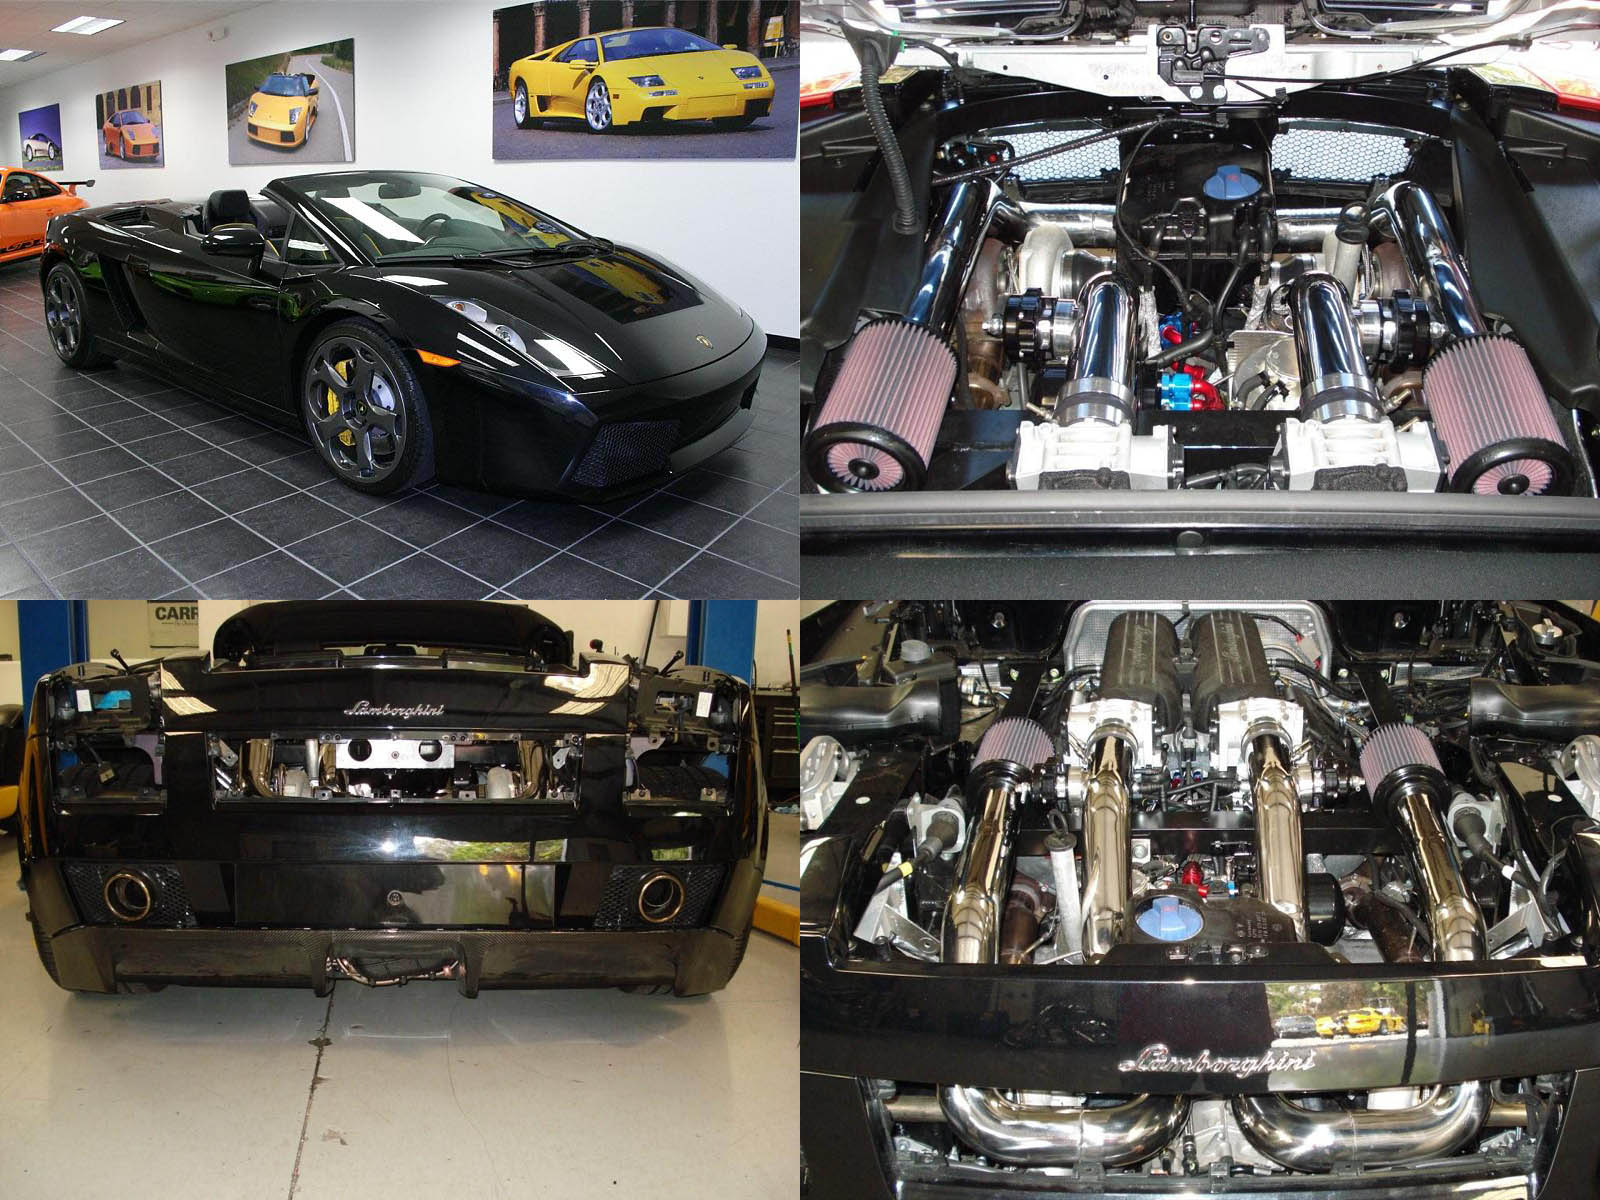 2007 Lamborghini Gallardo Heffner Twin Turbo